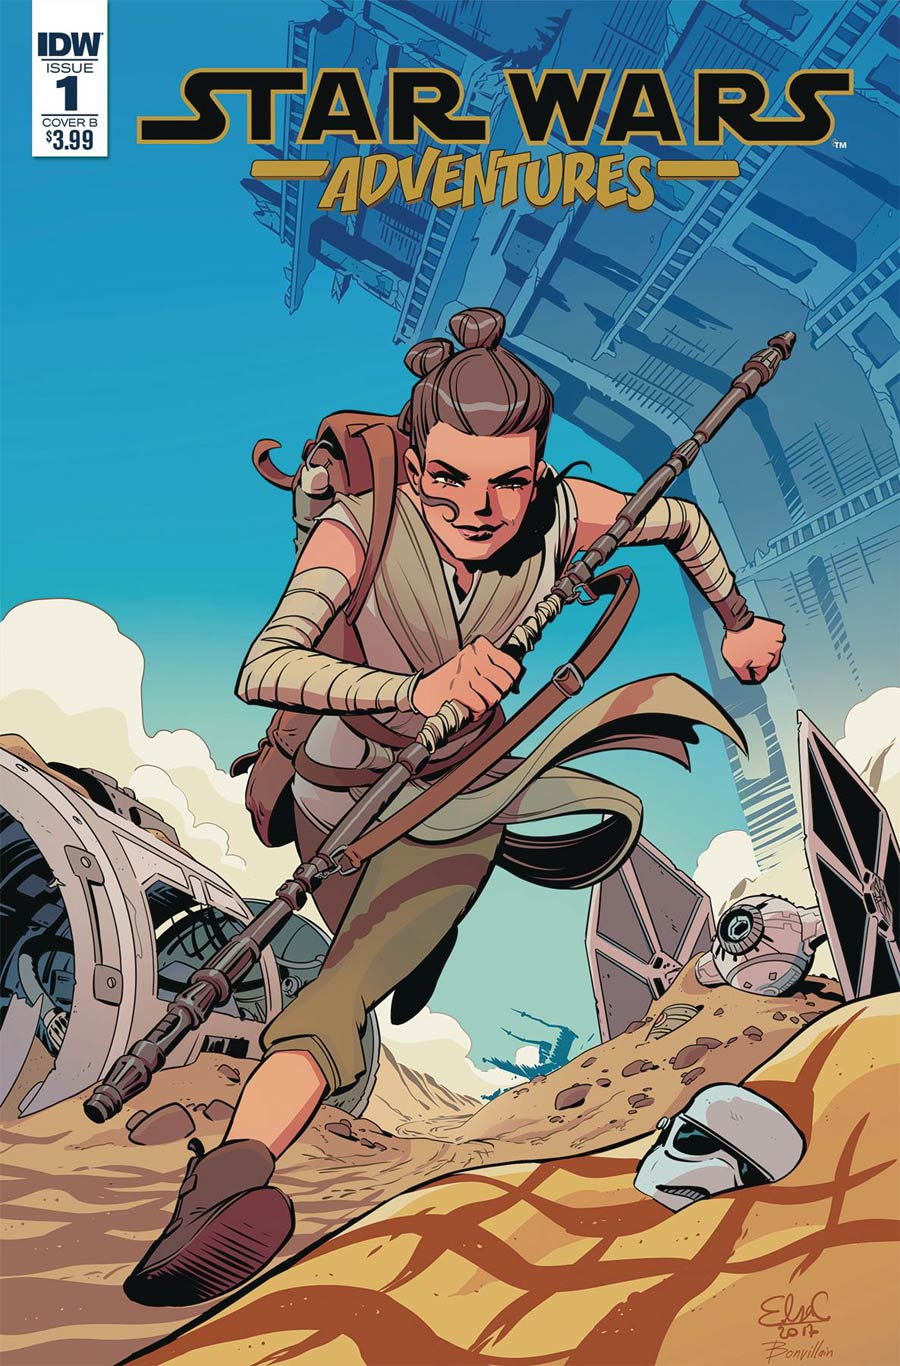 Star Wars Adventures #1, by Elsa Charretier. (IDW Publishing)